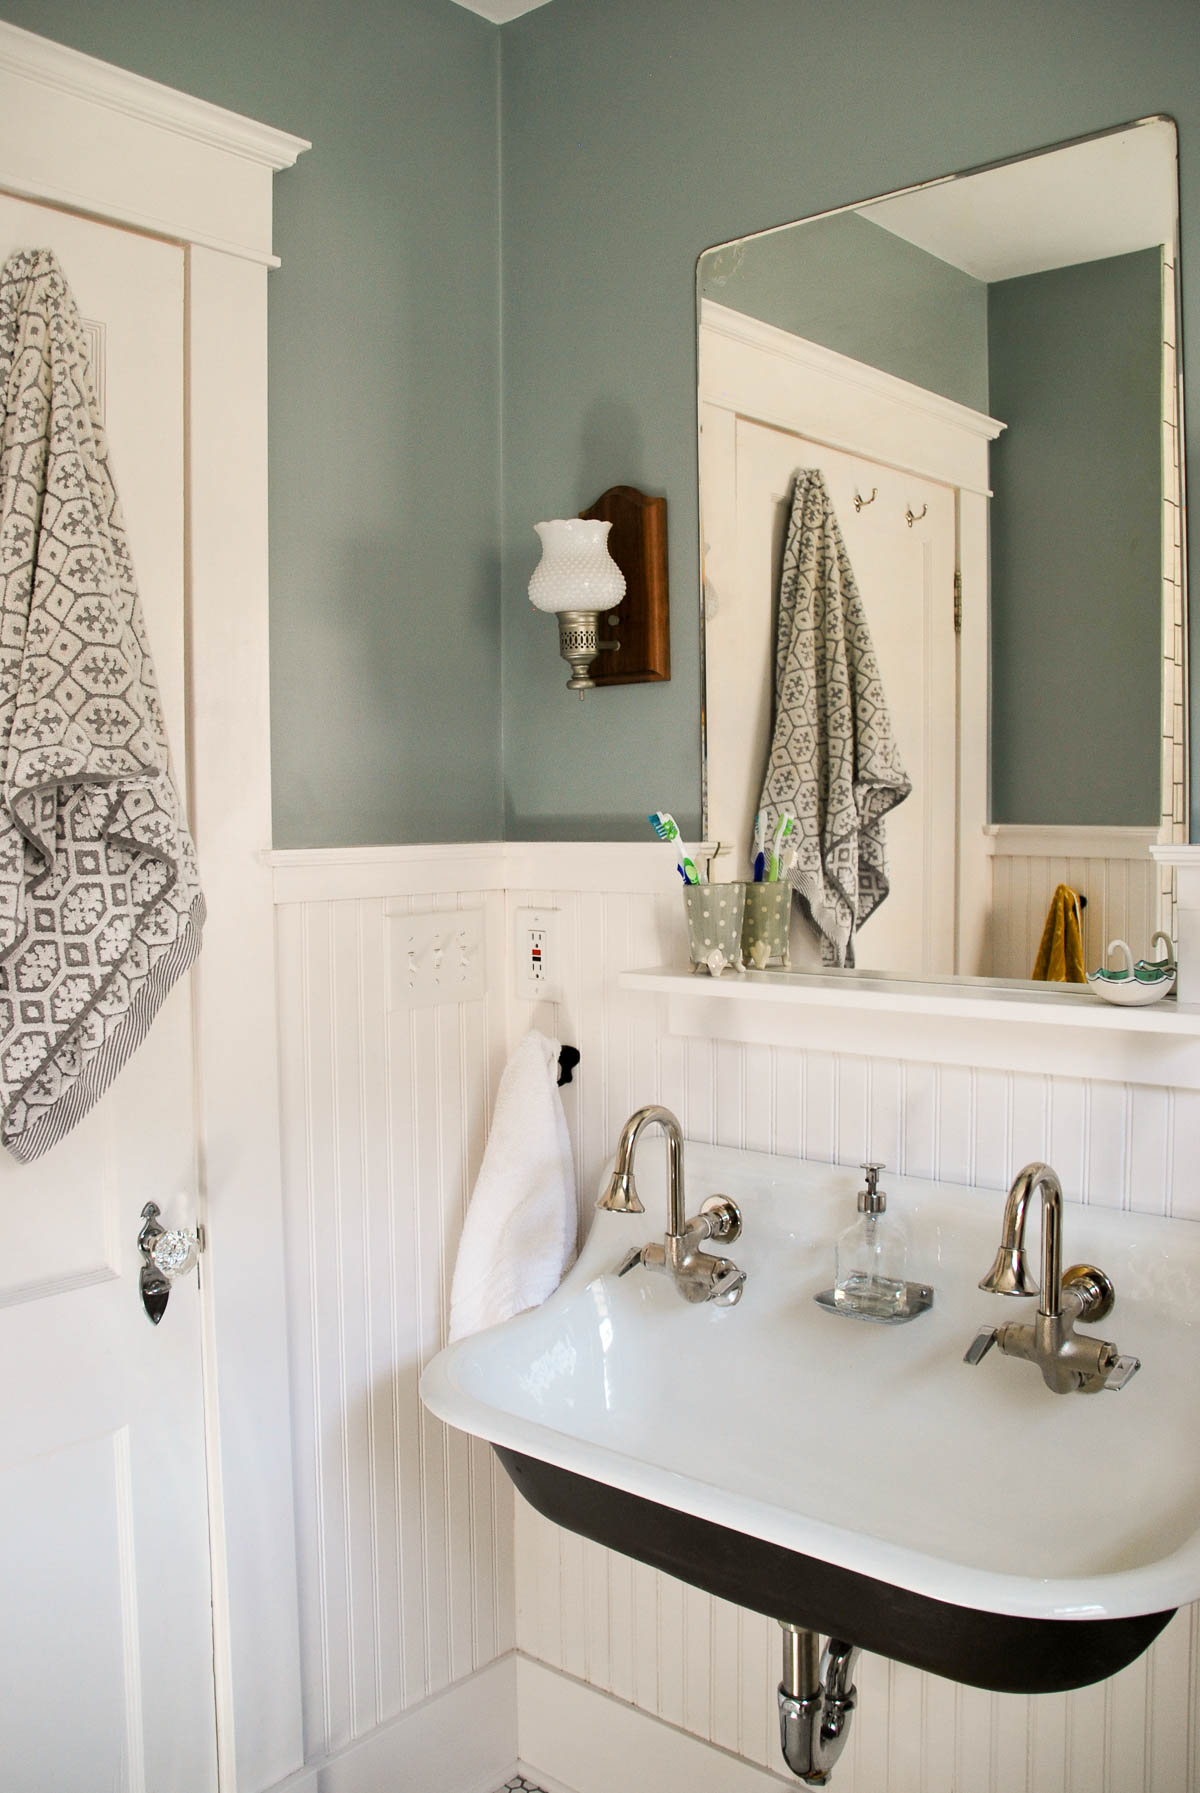 Bathroom Renovations Questions bathroom renovation // before and after - shellymade